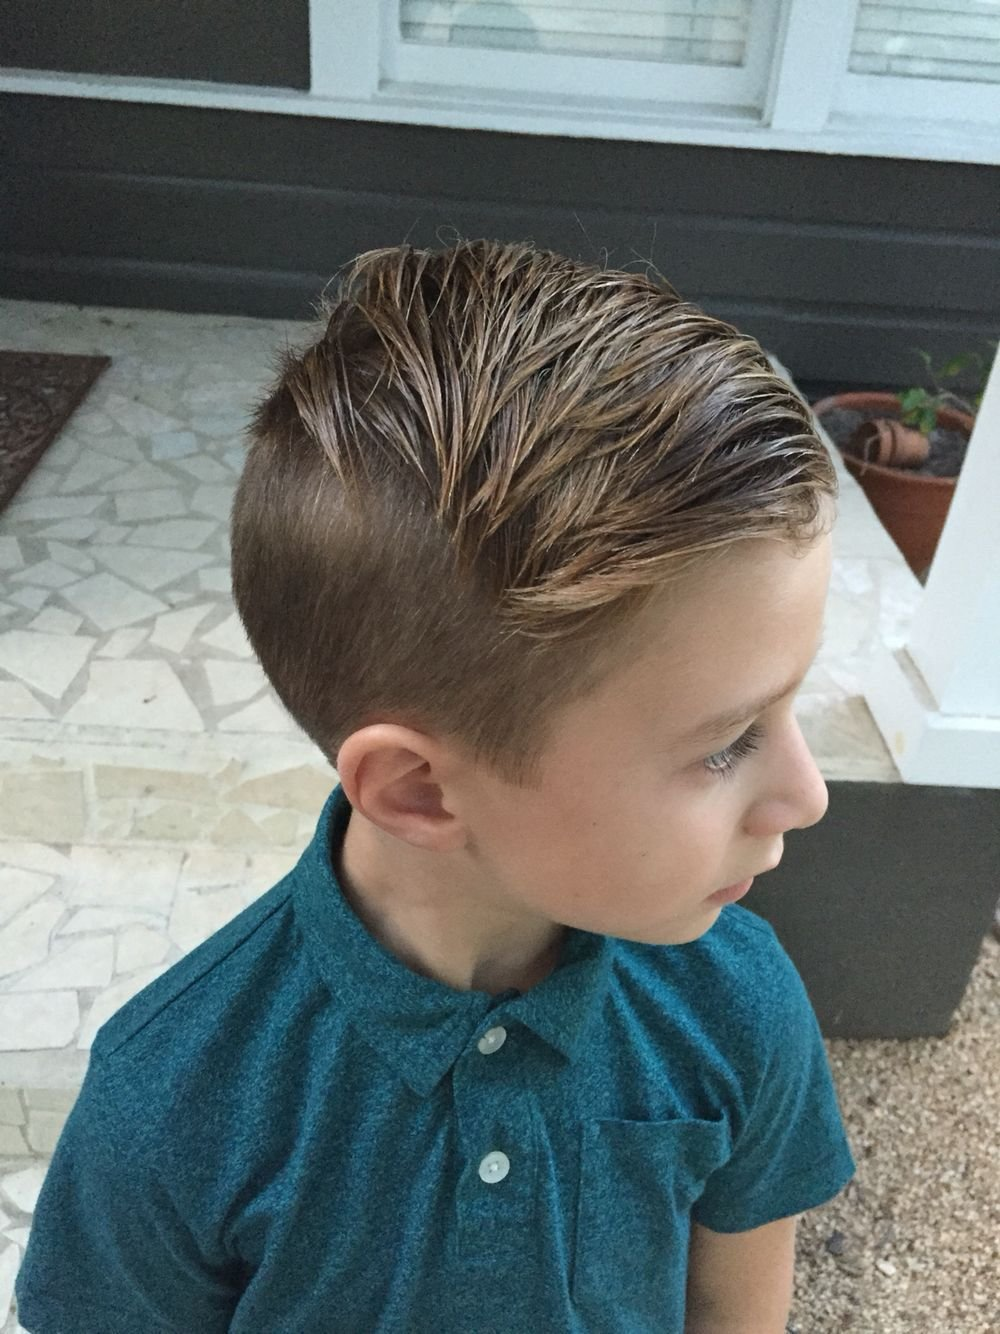 The Best Boy Hair Lake S Undercut 7 Years Old Has Never Been More Pictures